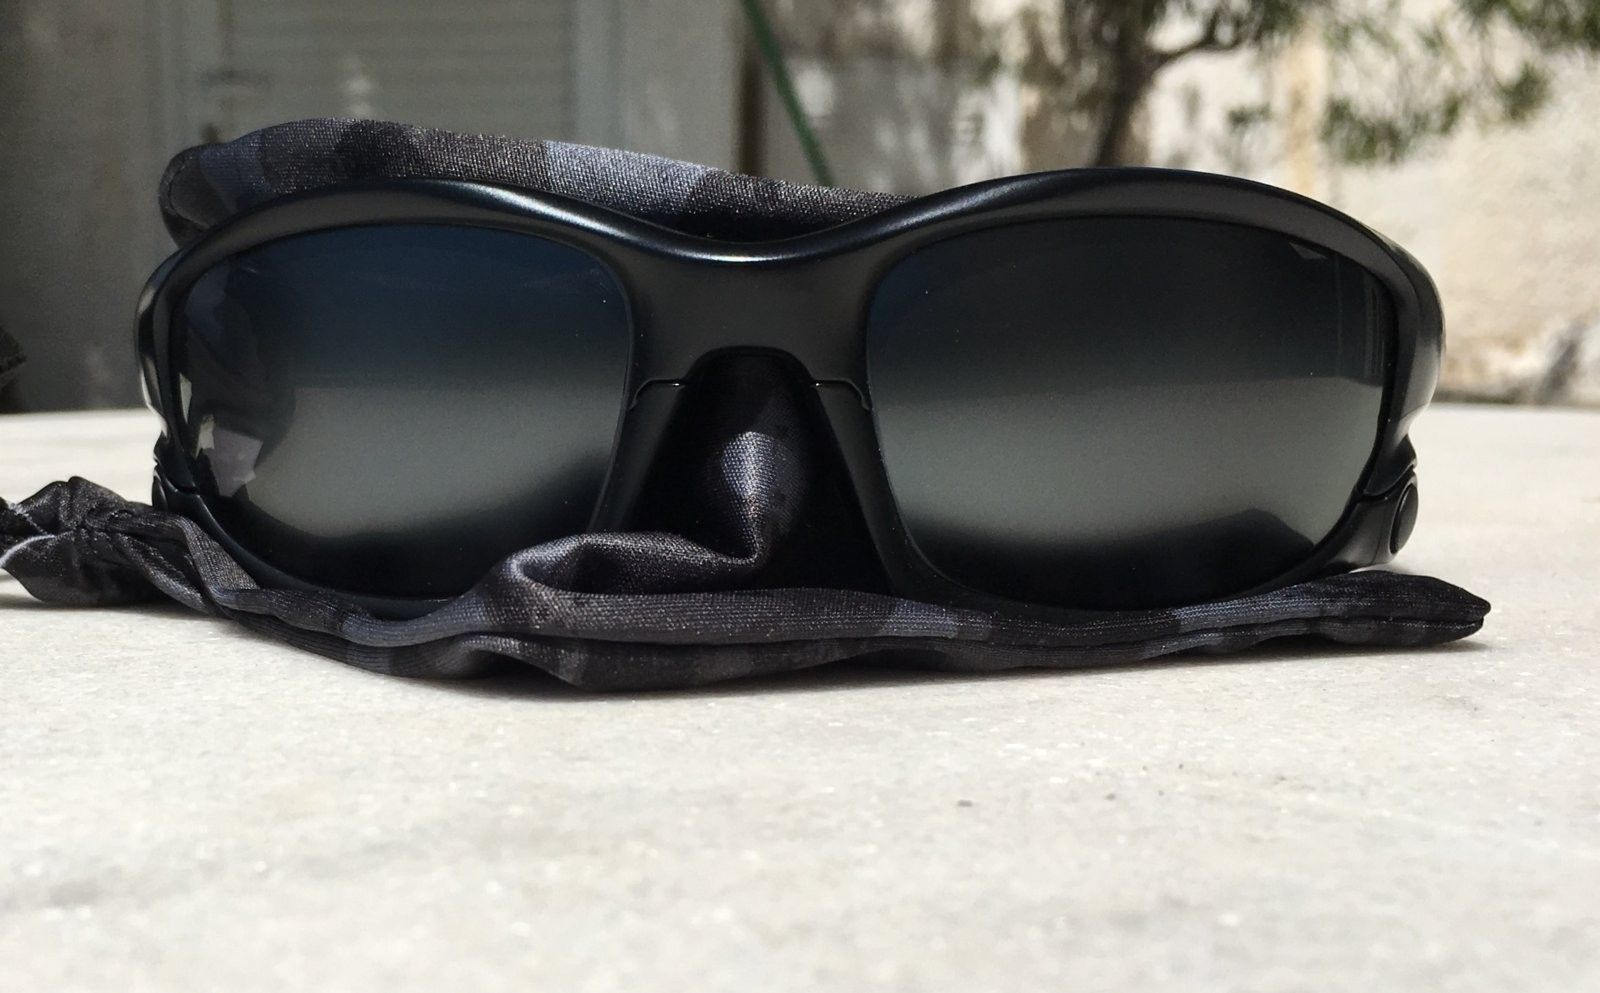 Split/Wind Jackets with Dillon Matte Lenses (Rare) - FullSizeRender 12.jpg